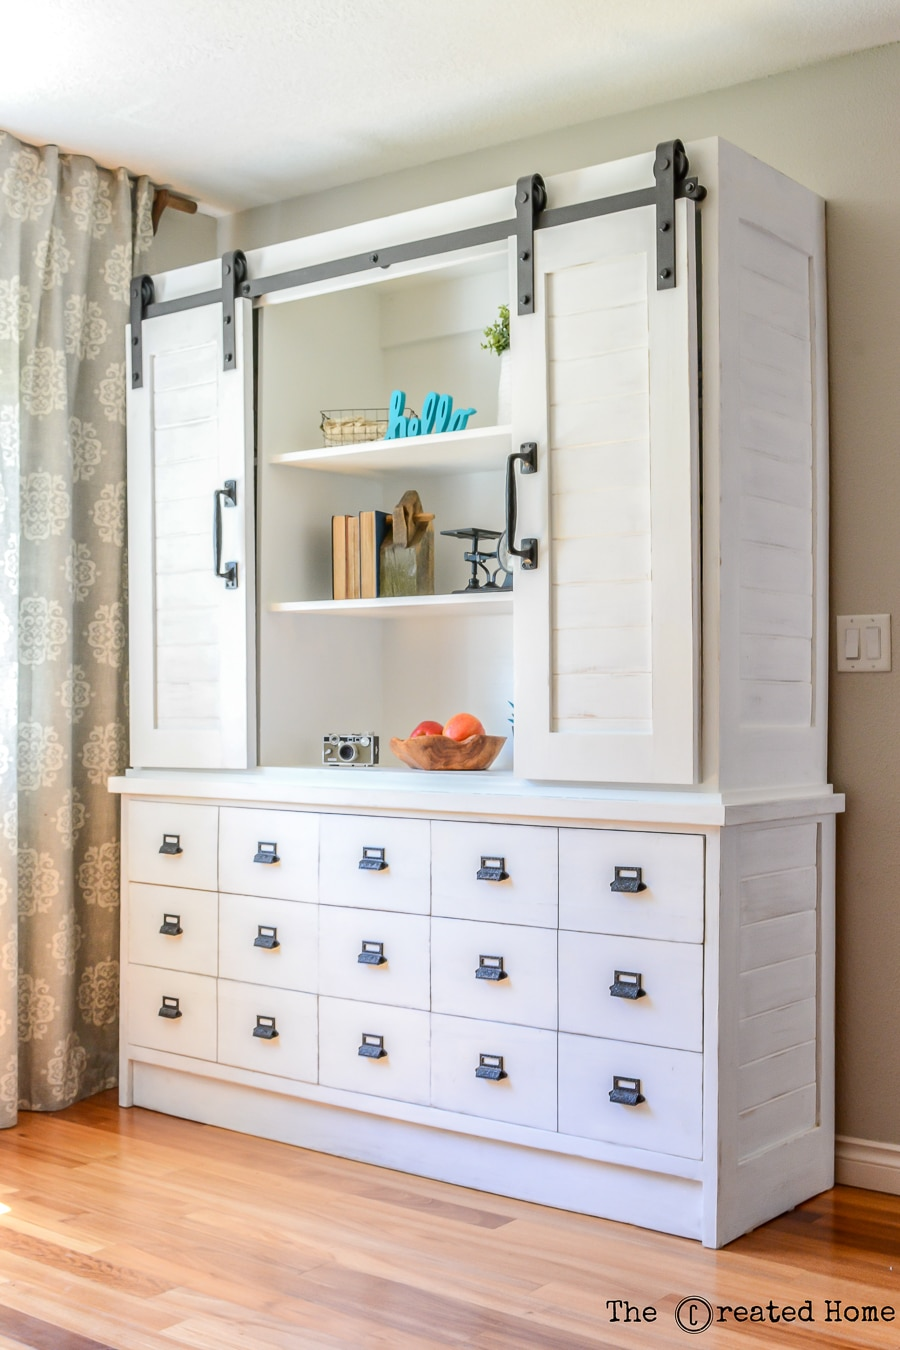 How to build a gorgeous farmhouse sliding barn door buffet and hutch